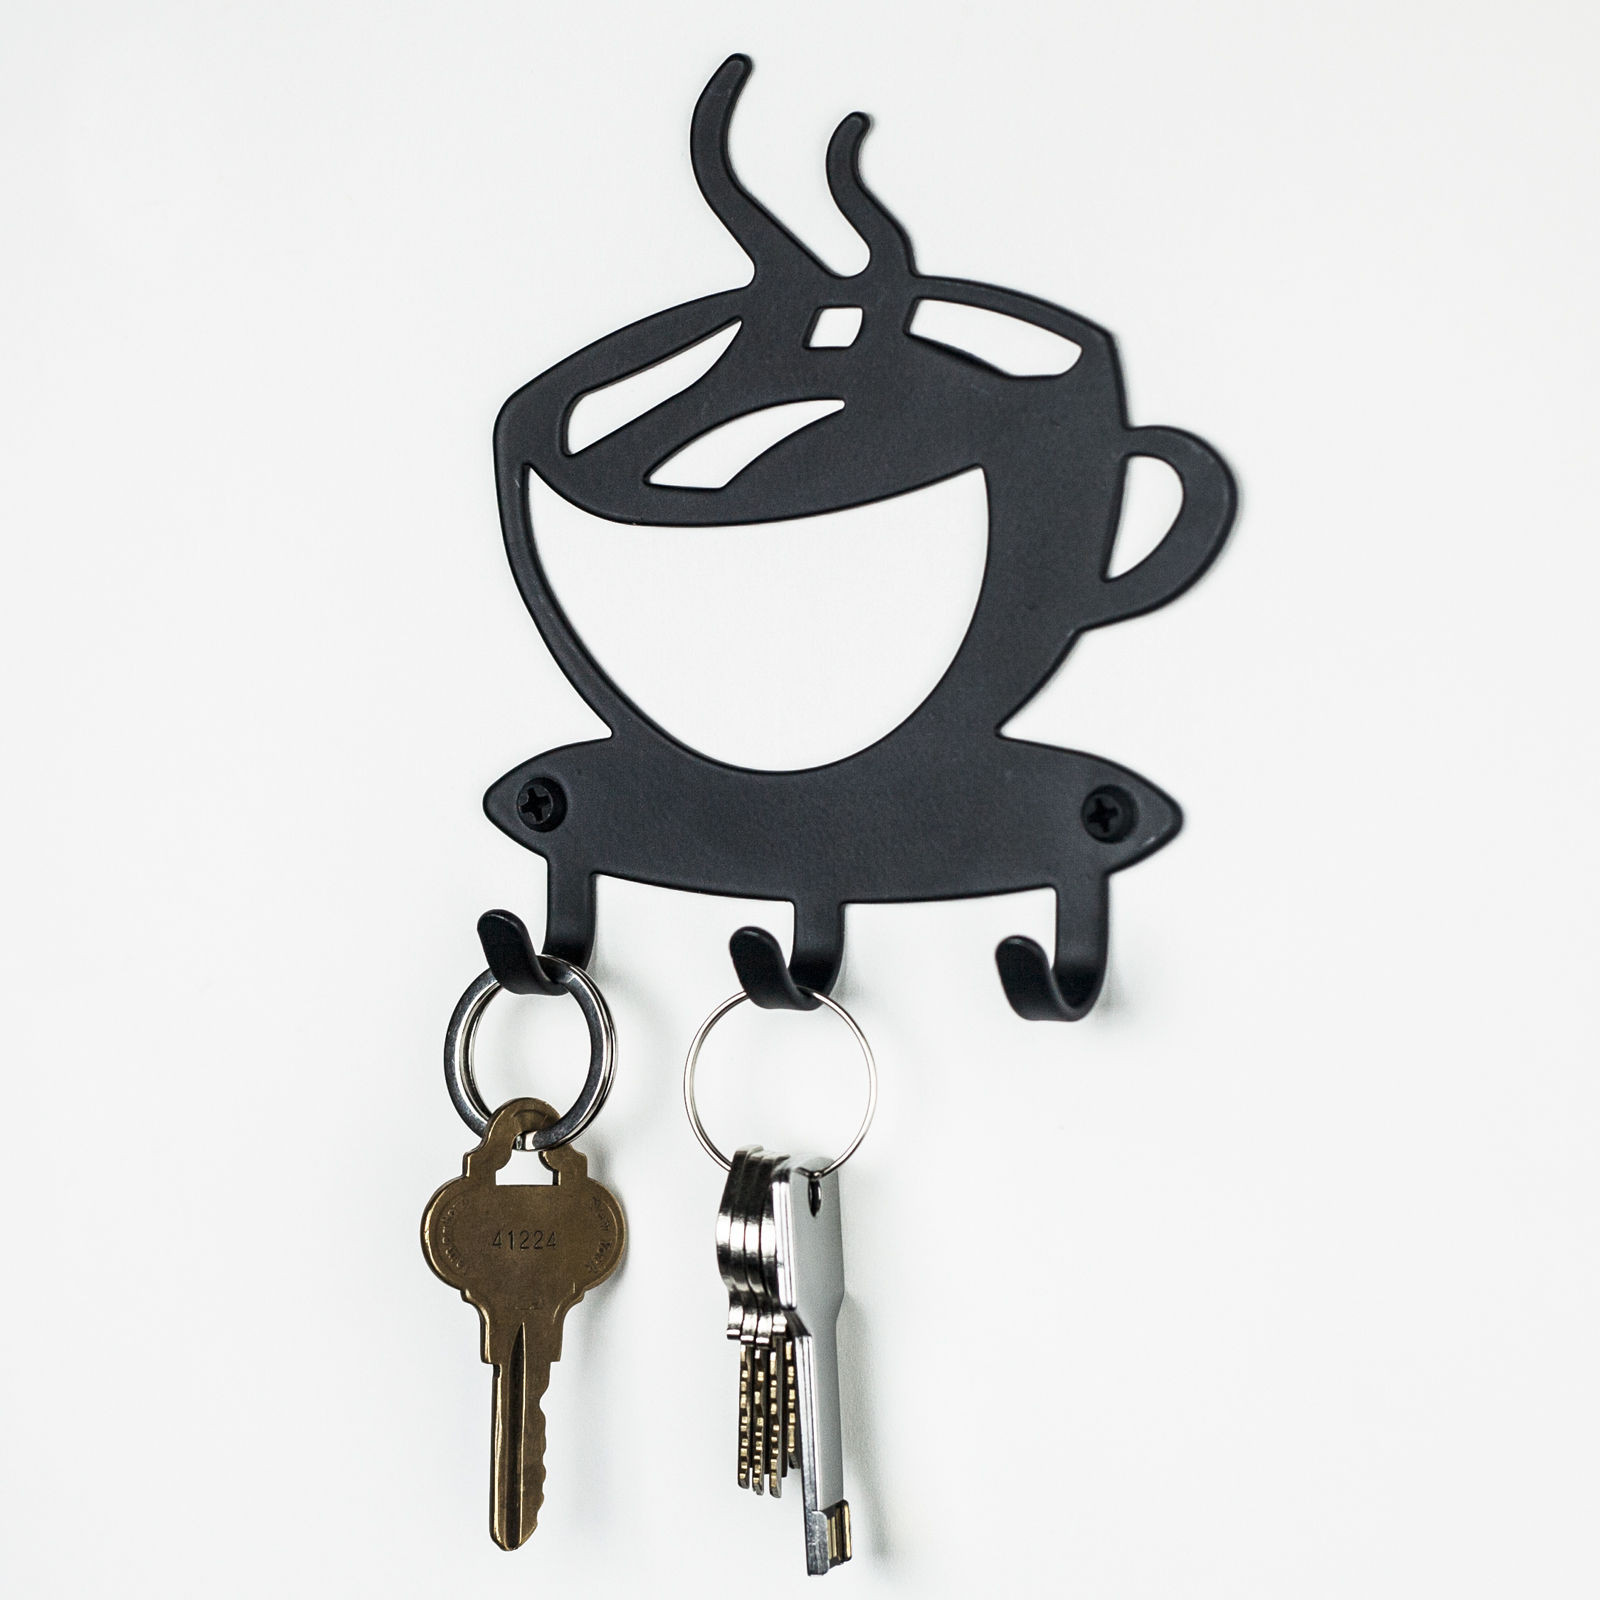 Coffee Wall Mount 4 Key Hanger Hook Rack Holder Organizer Home Office Decor